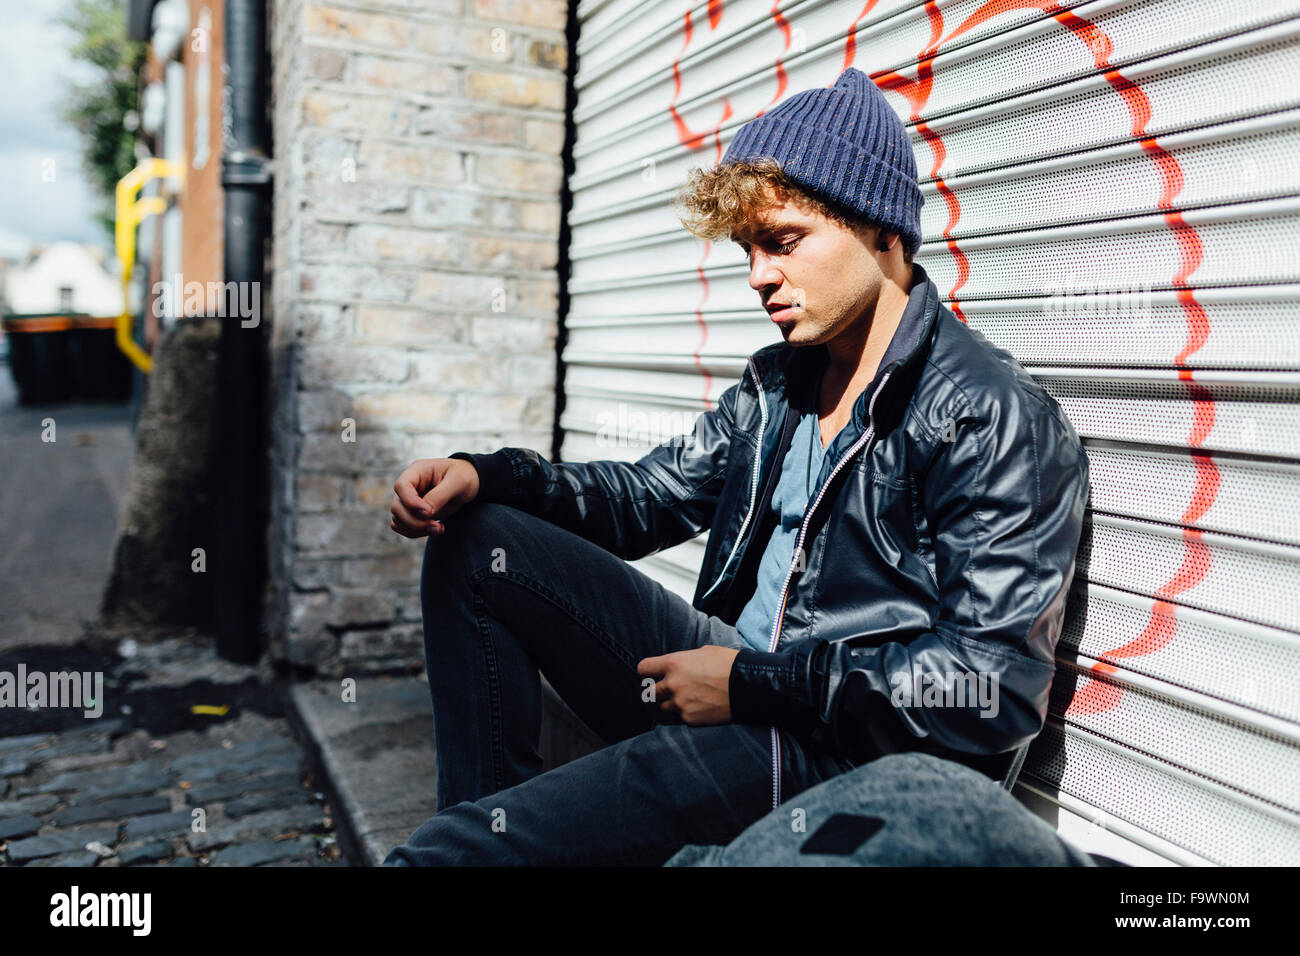 Young man leaning against roller shutter - Stock Image